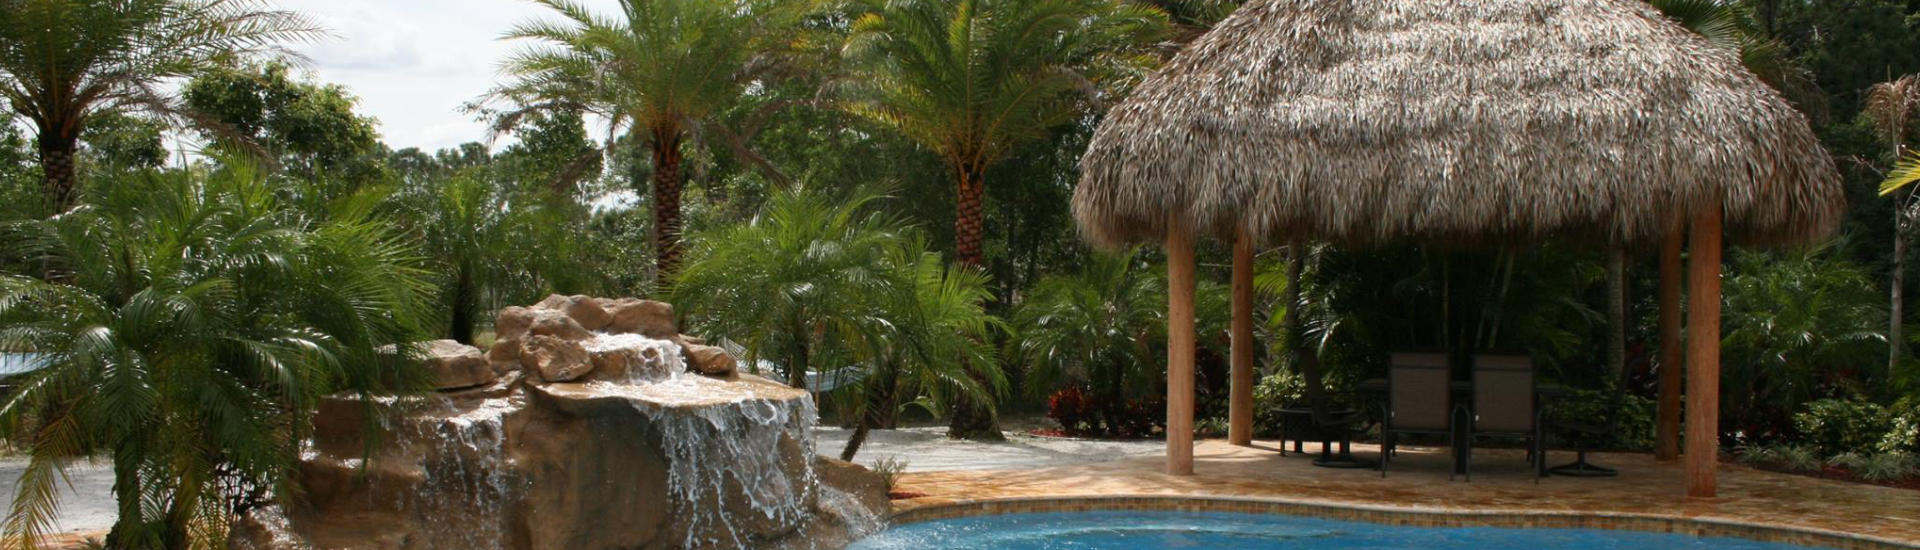 a hardscape waterfall and a tiki hut on deck of a backyard swimming pool